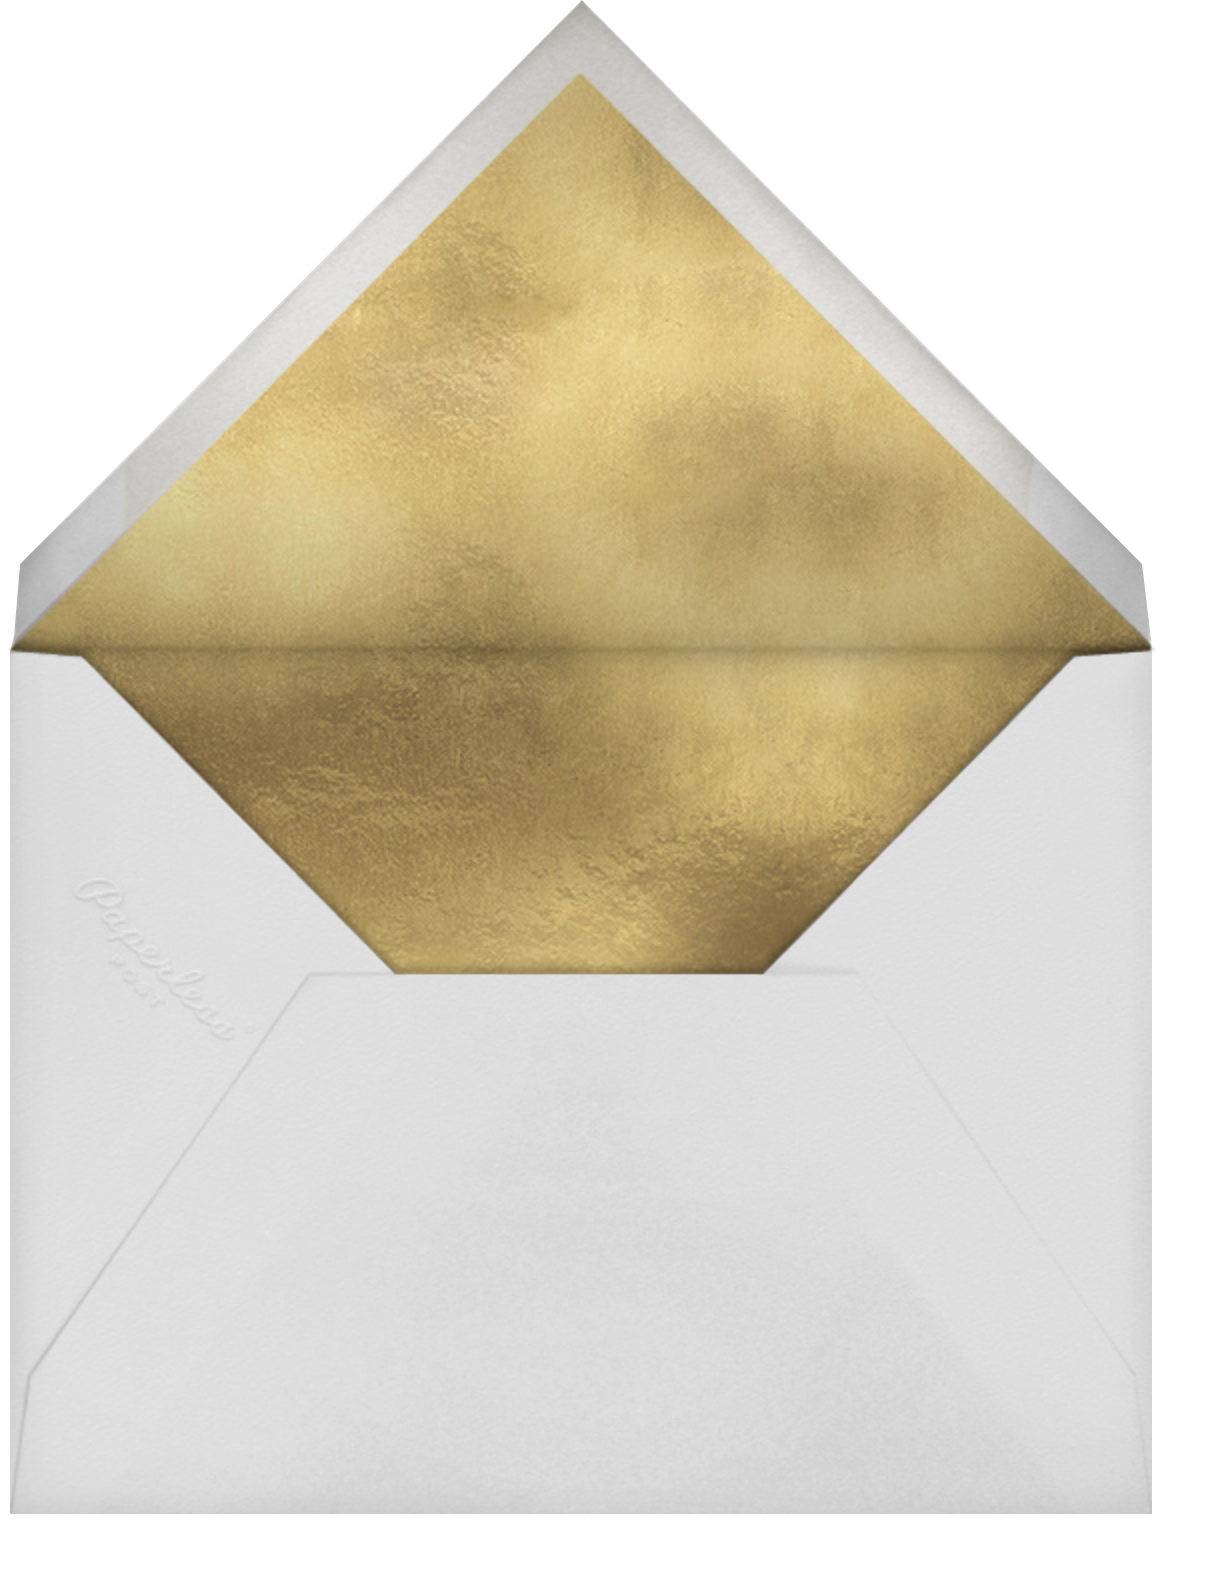 Merry Christmas Script - Rifle Paper Co. - Christmas - envelope back